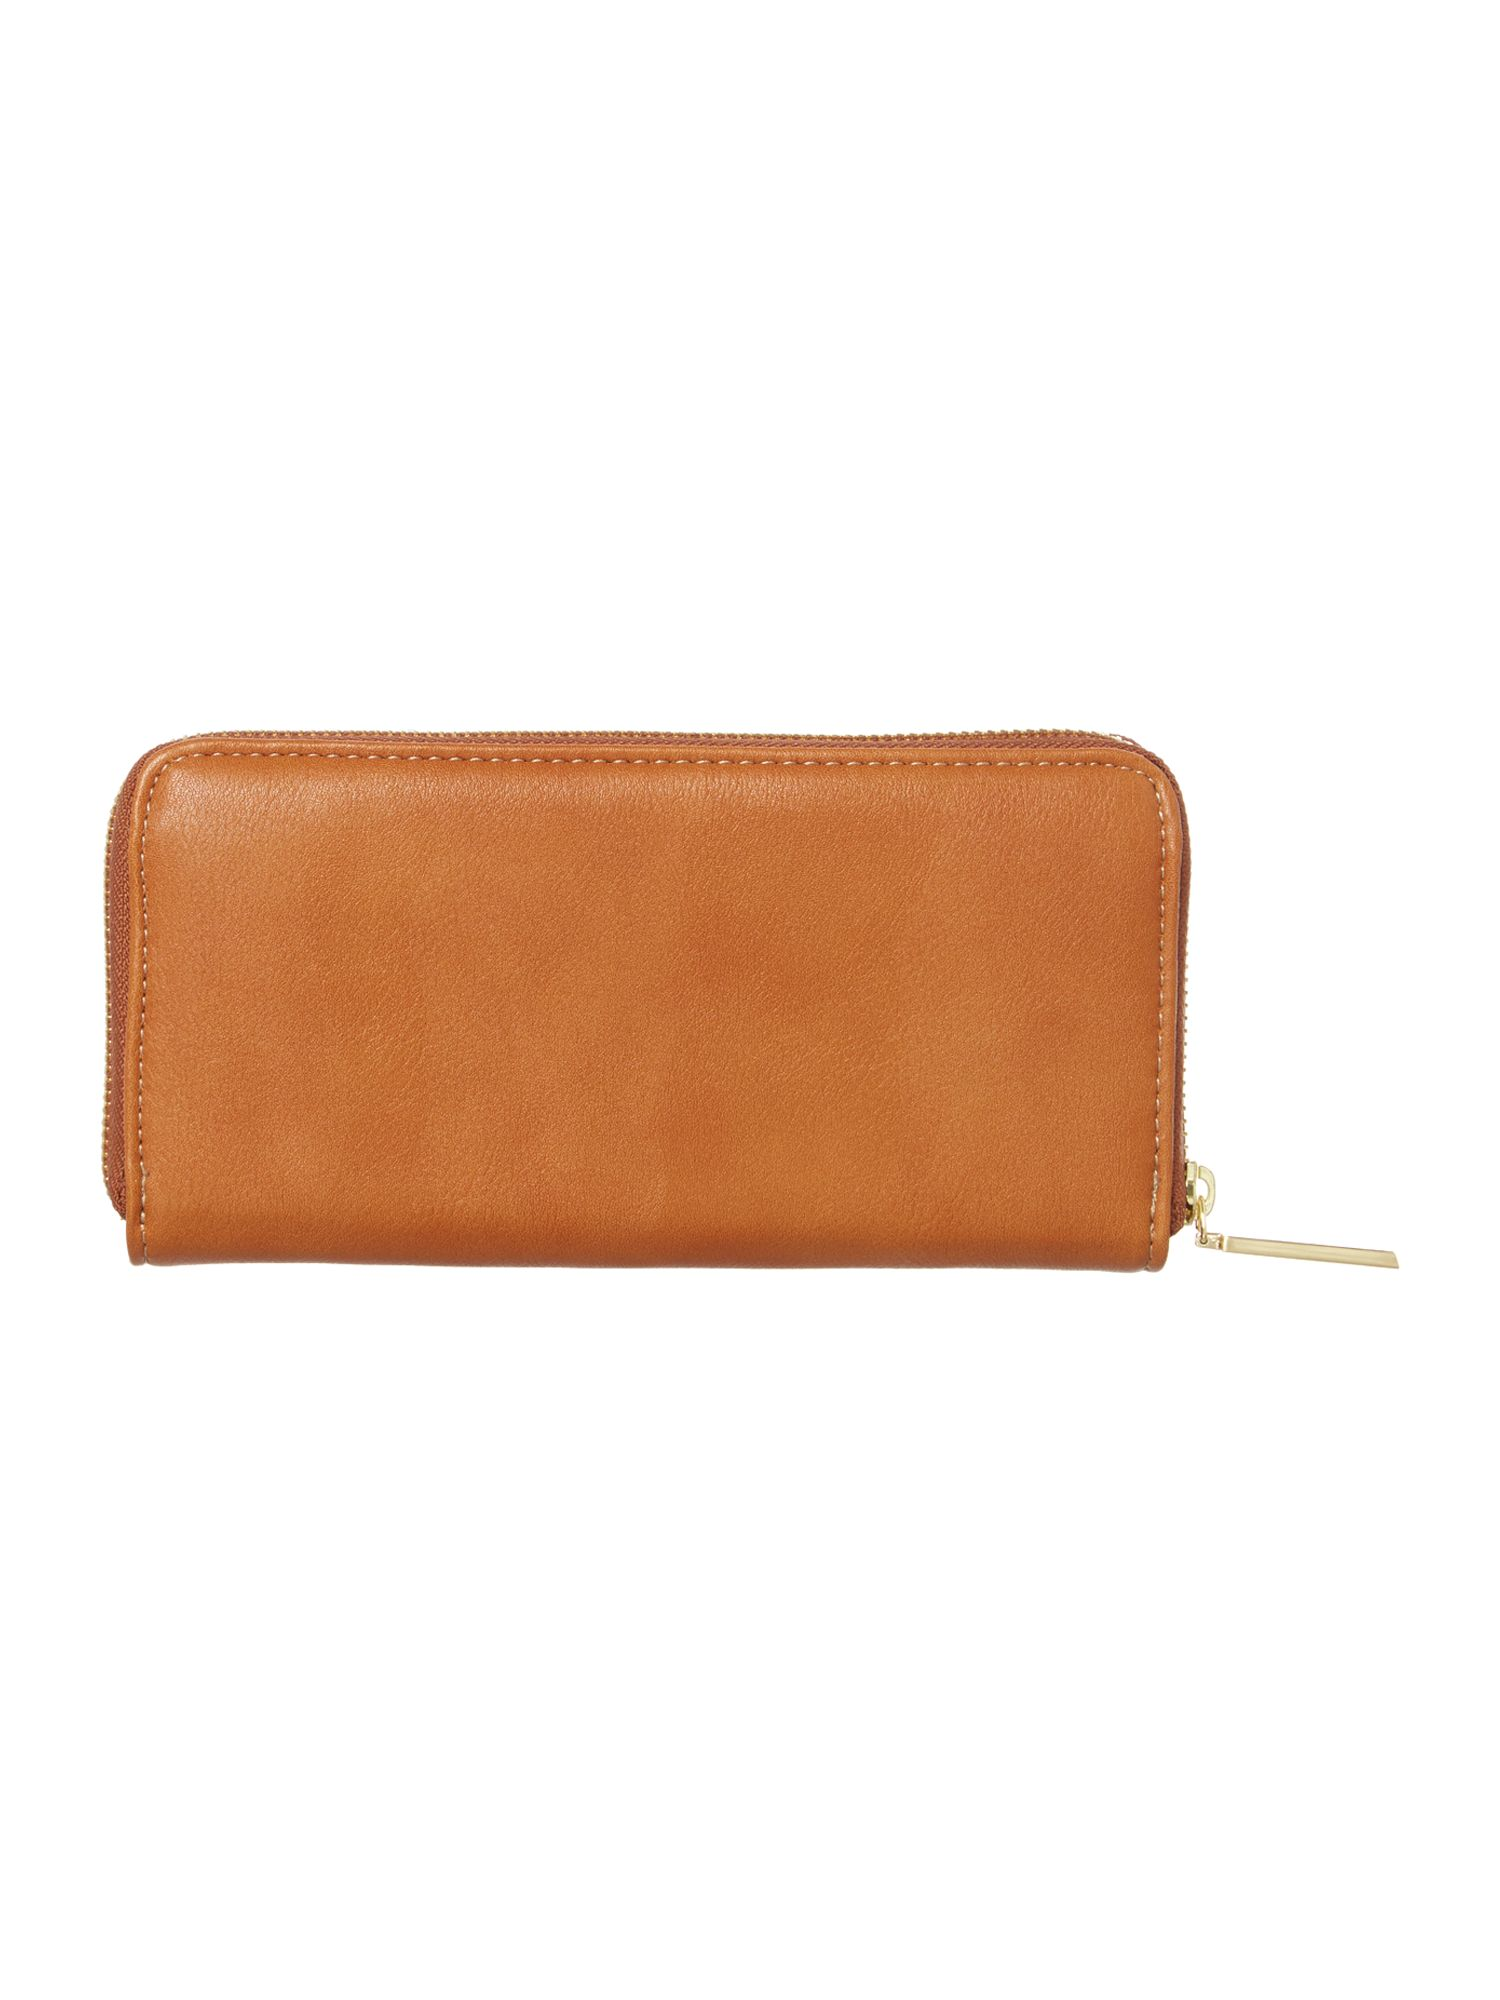 Stella tan large zip around purse